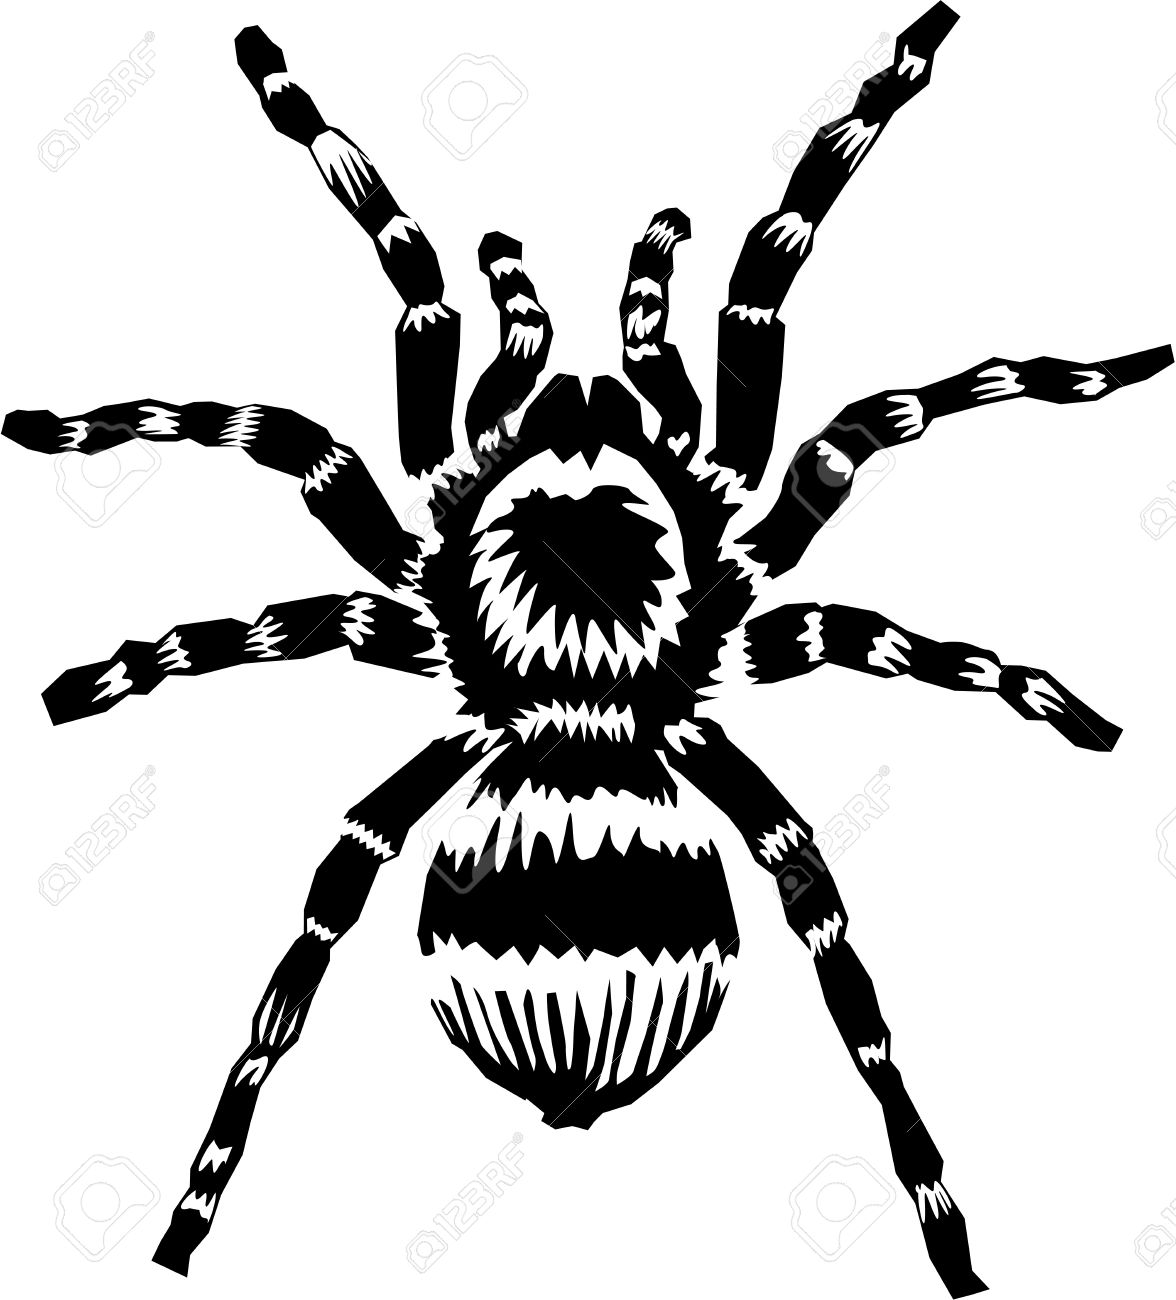 14,850 Spider Web Stock Vector Illustration And Royalty Free.